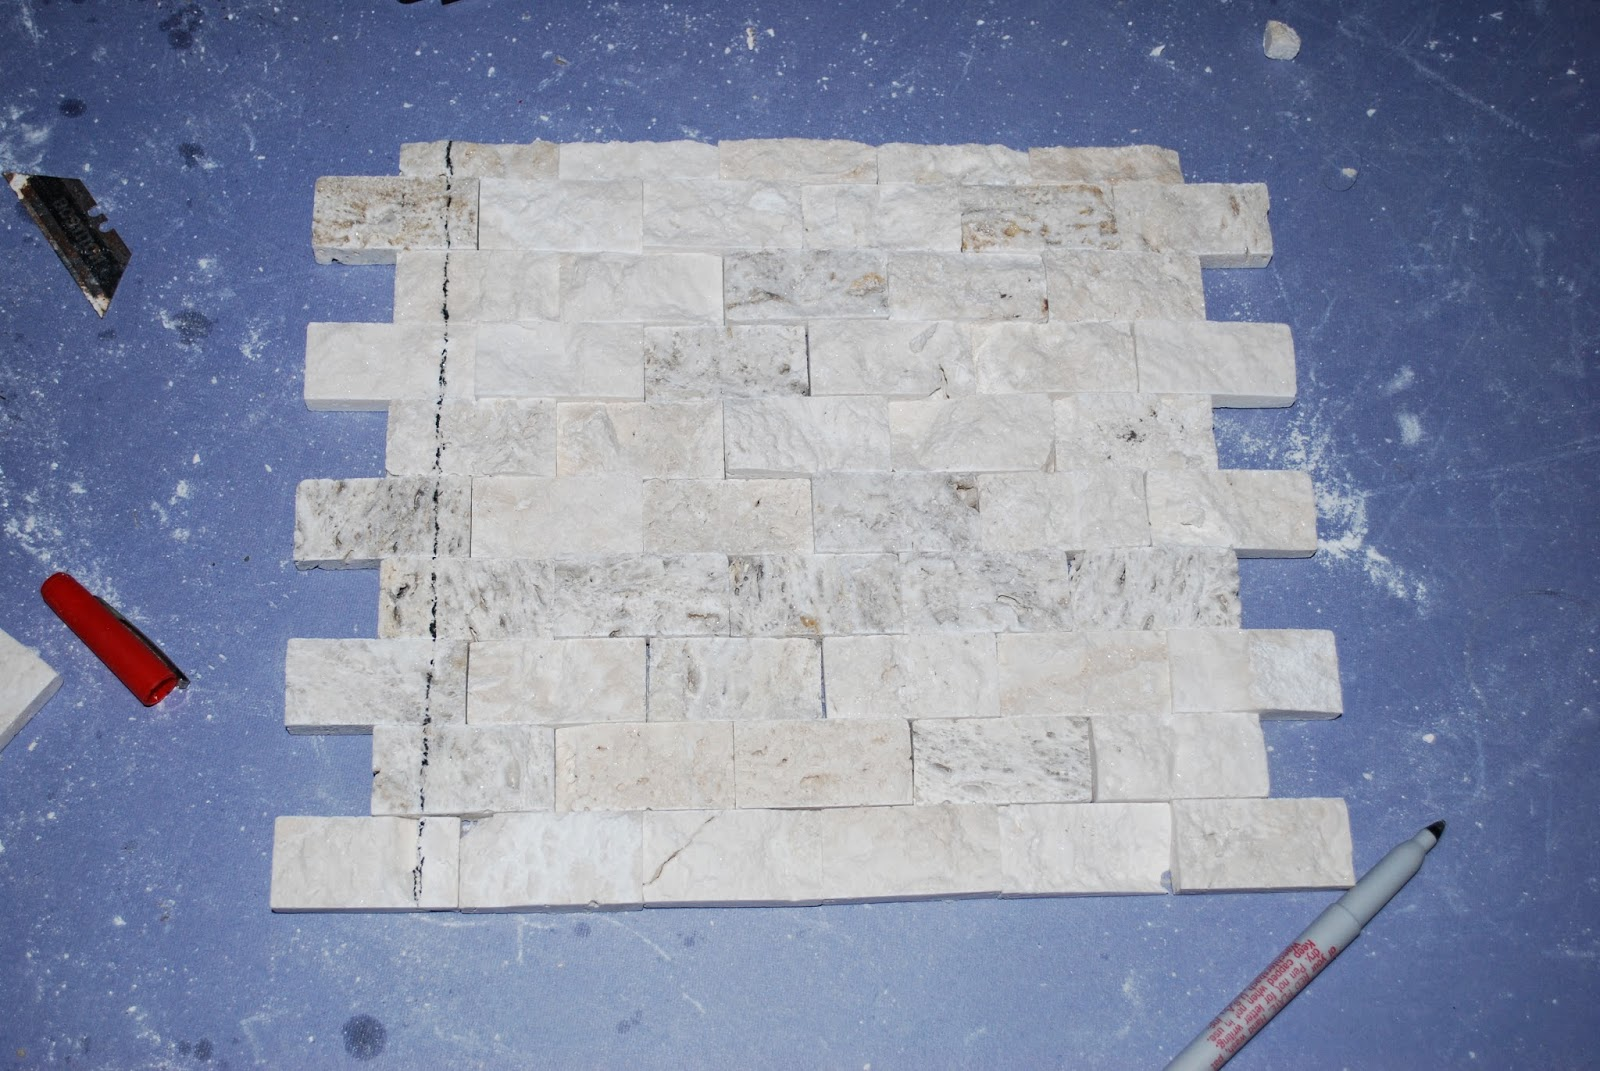 mark stacked stone tile for cuts